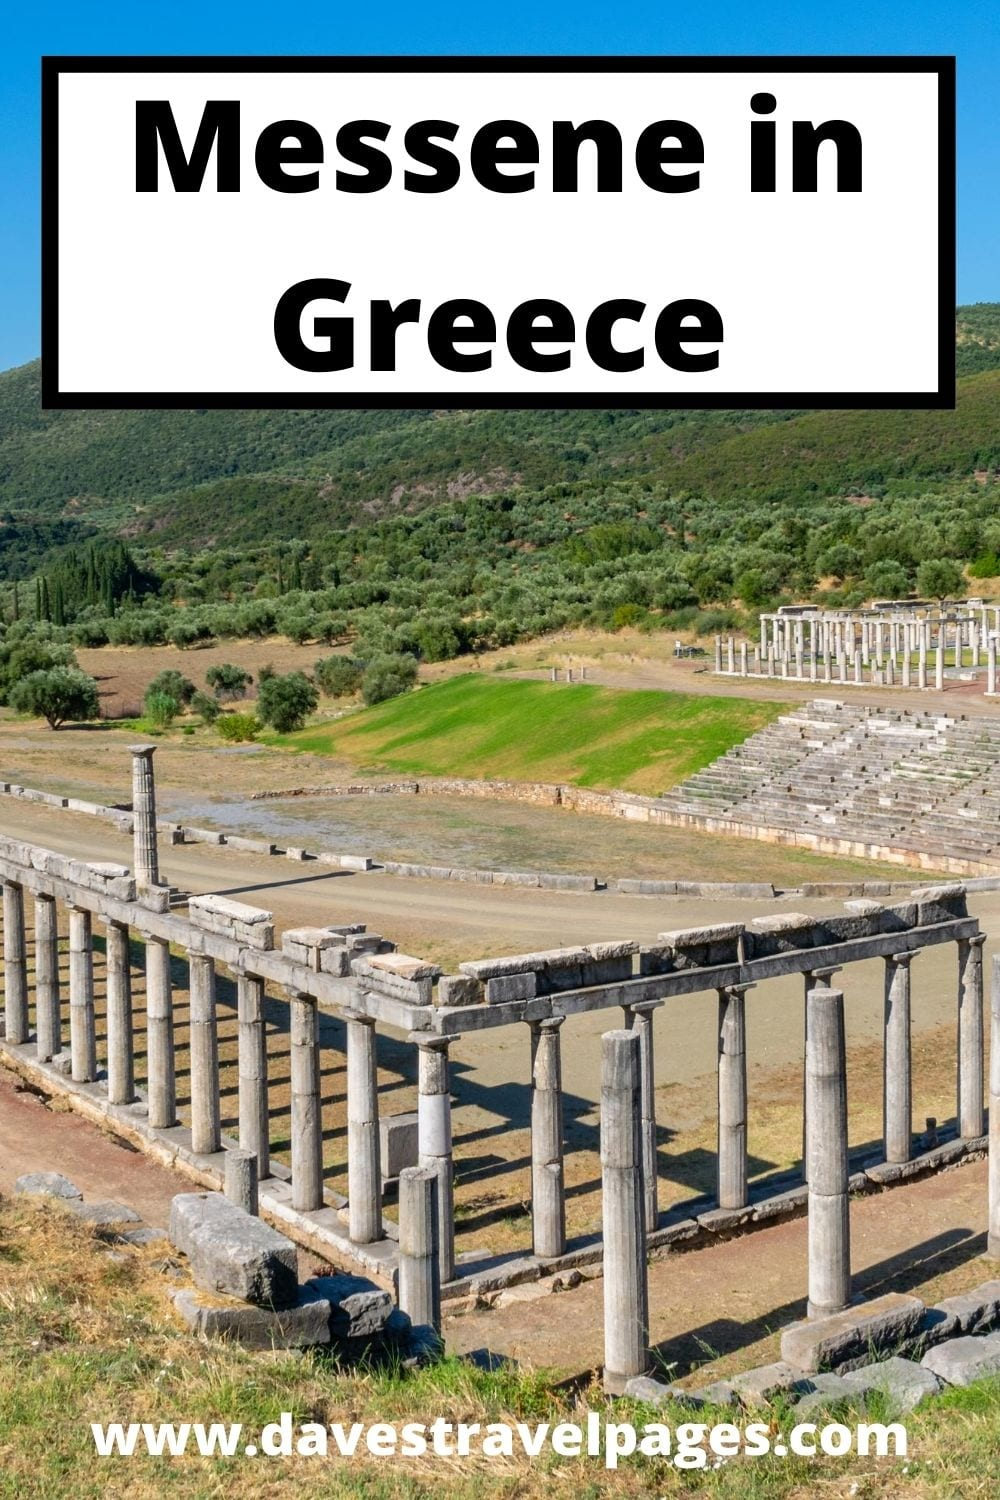 Ancient Messene in Greece